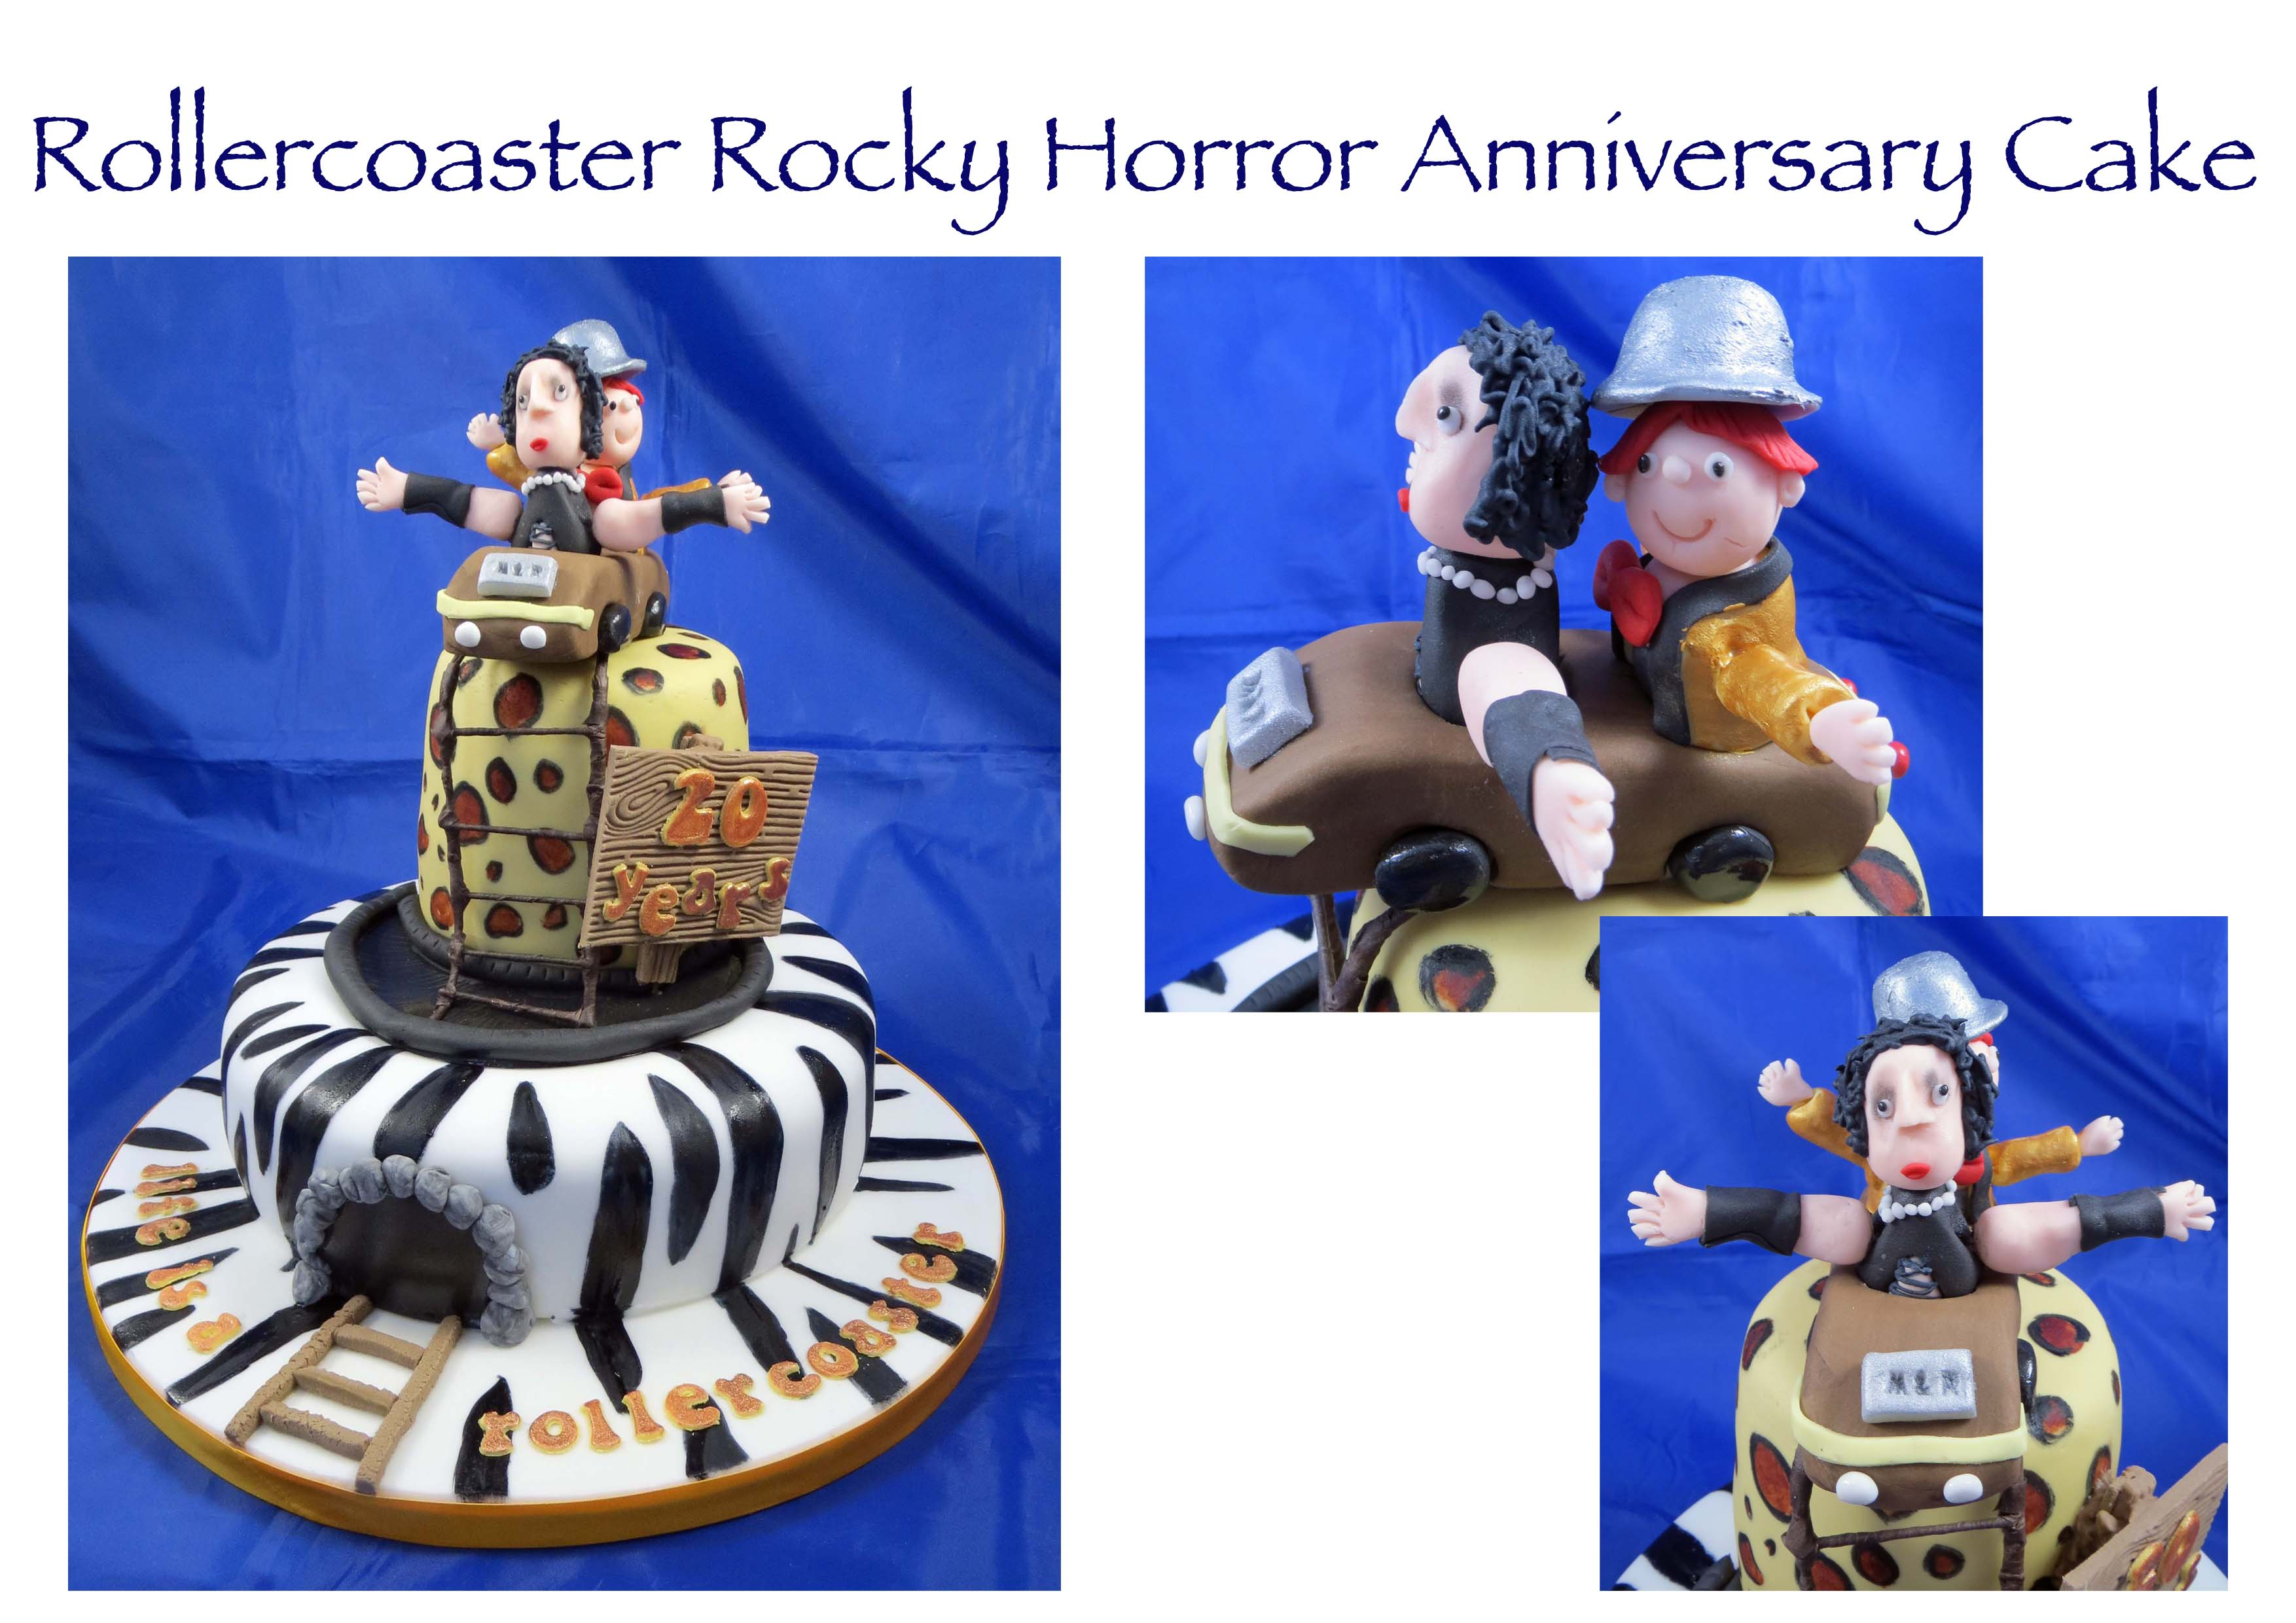 Rocky Horror Rollercoaster Anniversary Cake